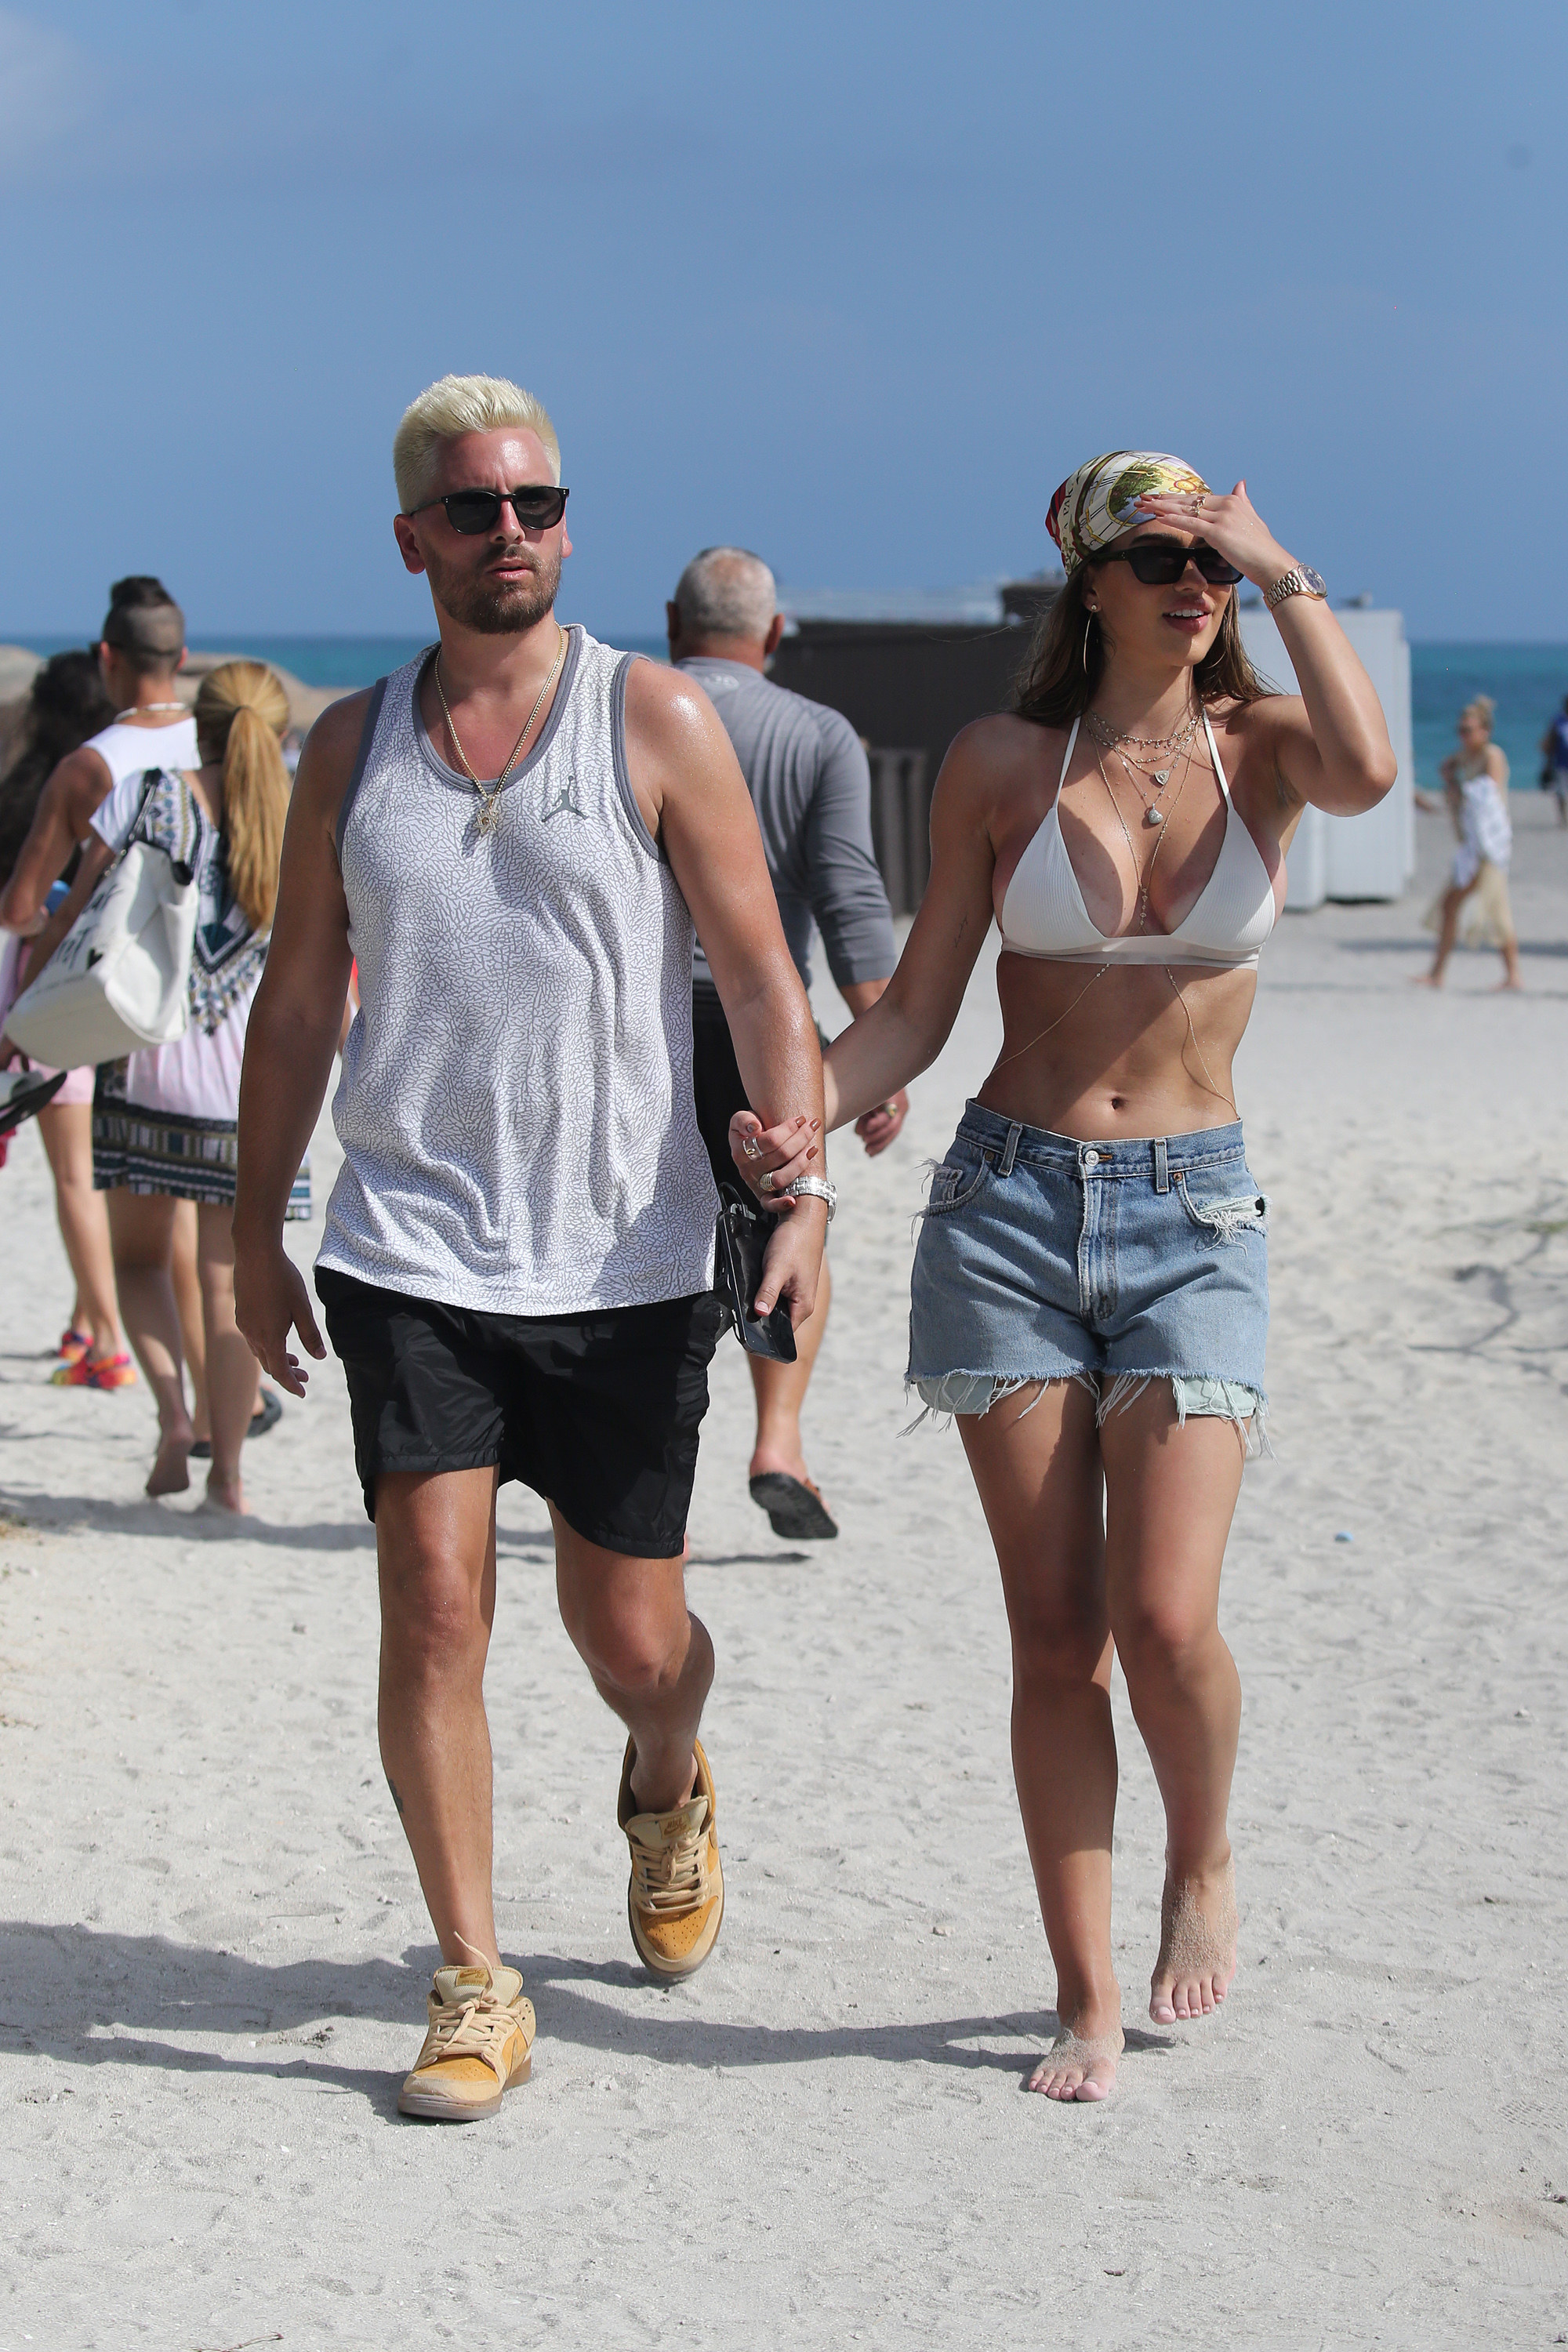 Scott and Amelia walking hand in hand on the beach